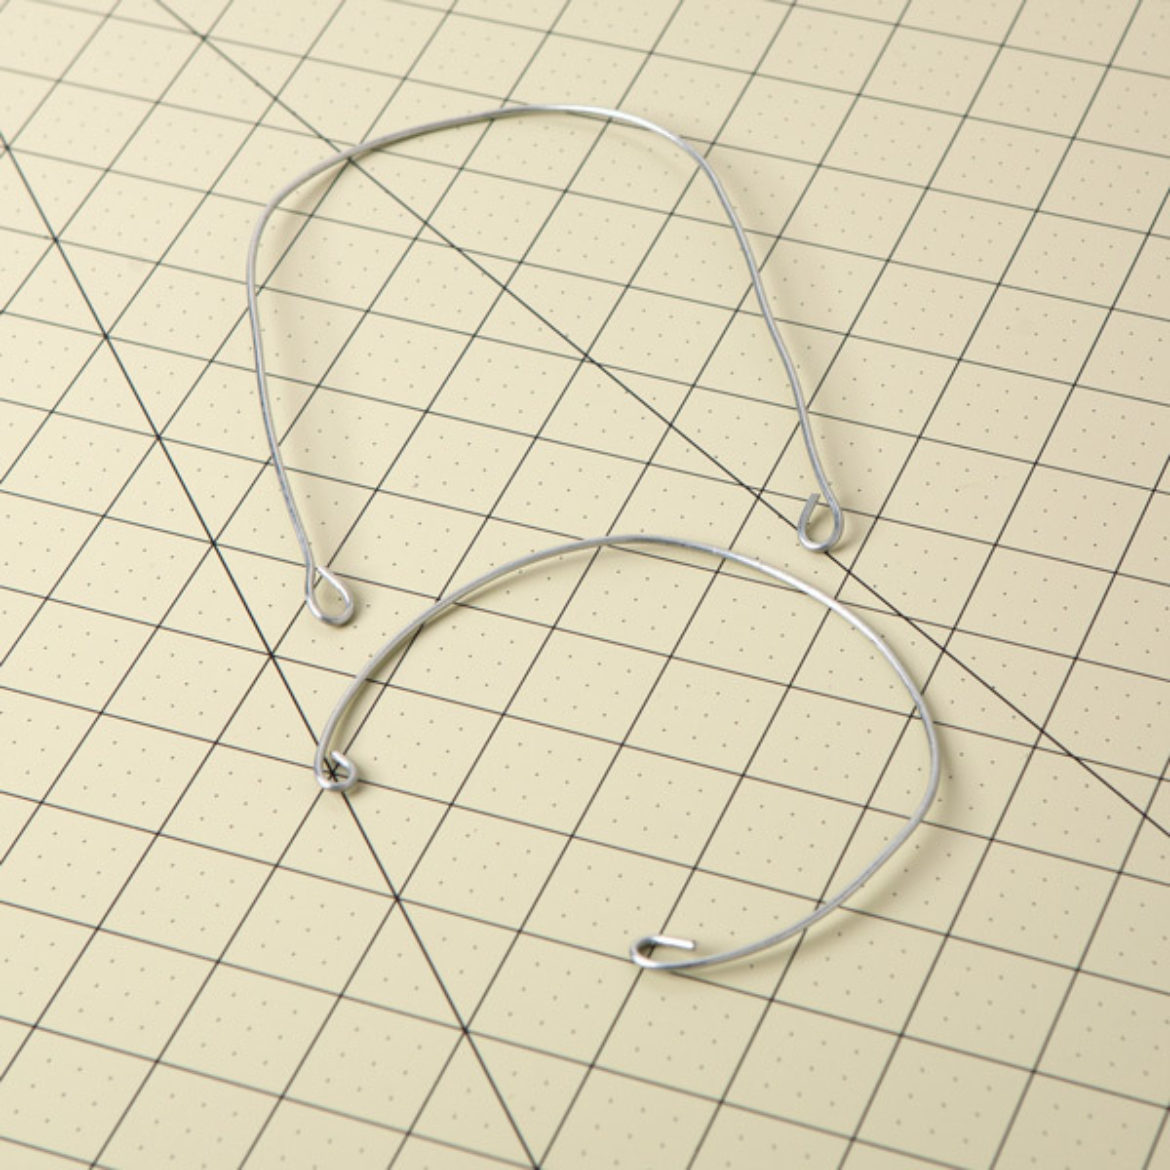 short wire bent into a u shape with loops on either end. Longer wire bent into a circular shape with the ends formed into loops